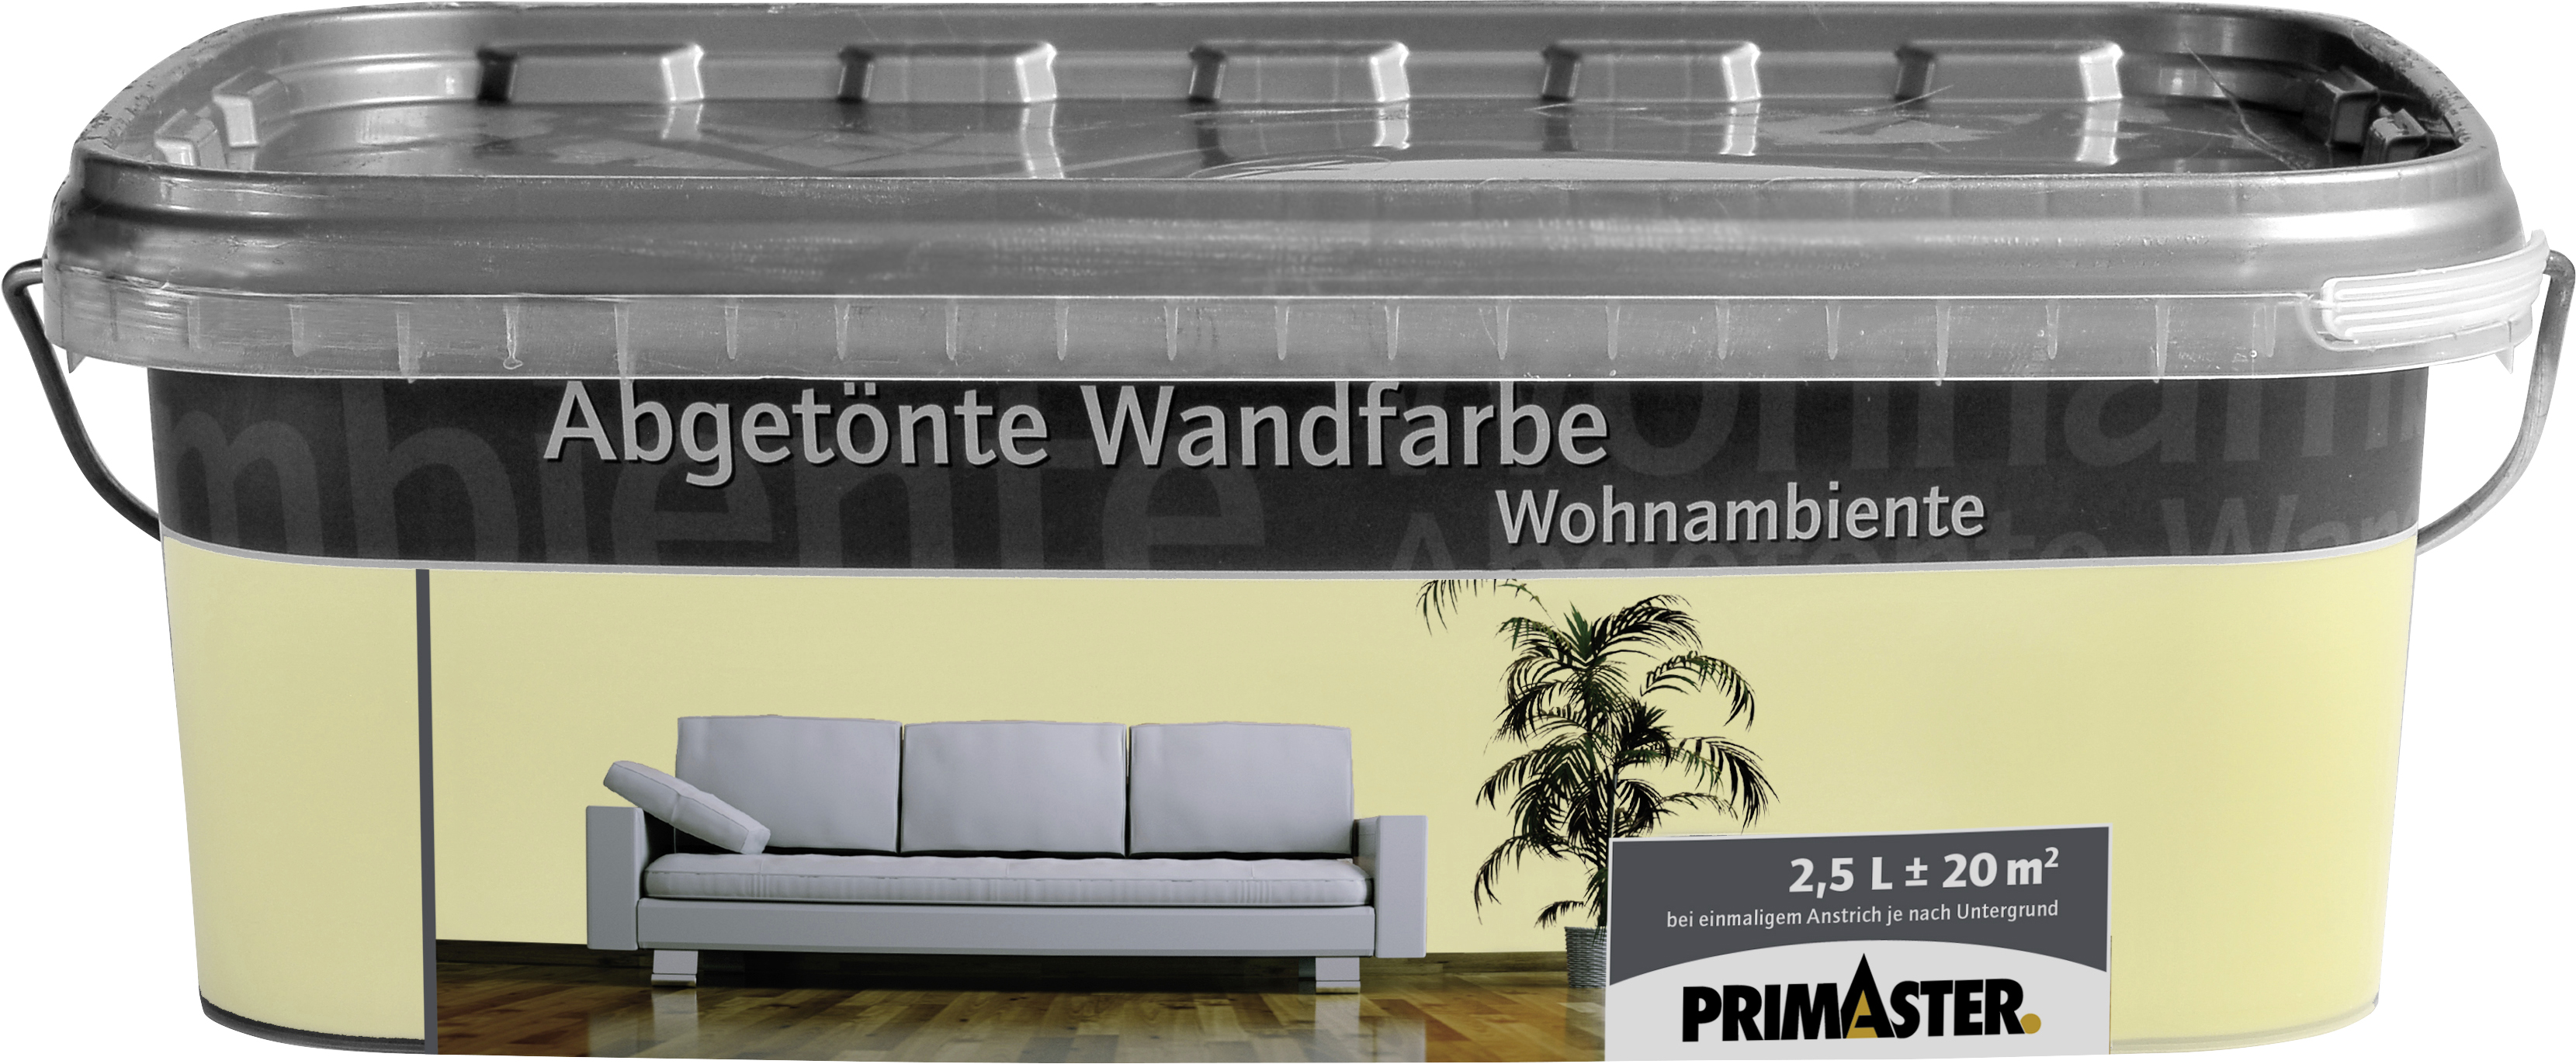 primaster wandfarbe wohnambiente farbig globus baumarkt online shop. Black Bedroom Furniture Sets. Home Design Ideas